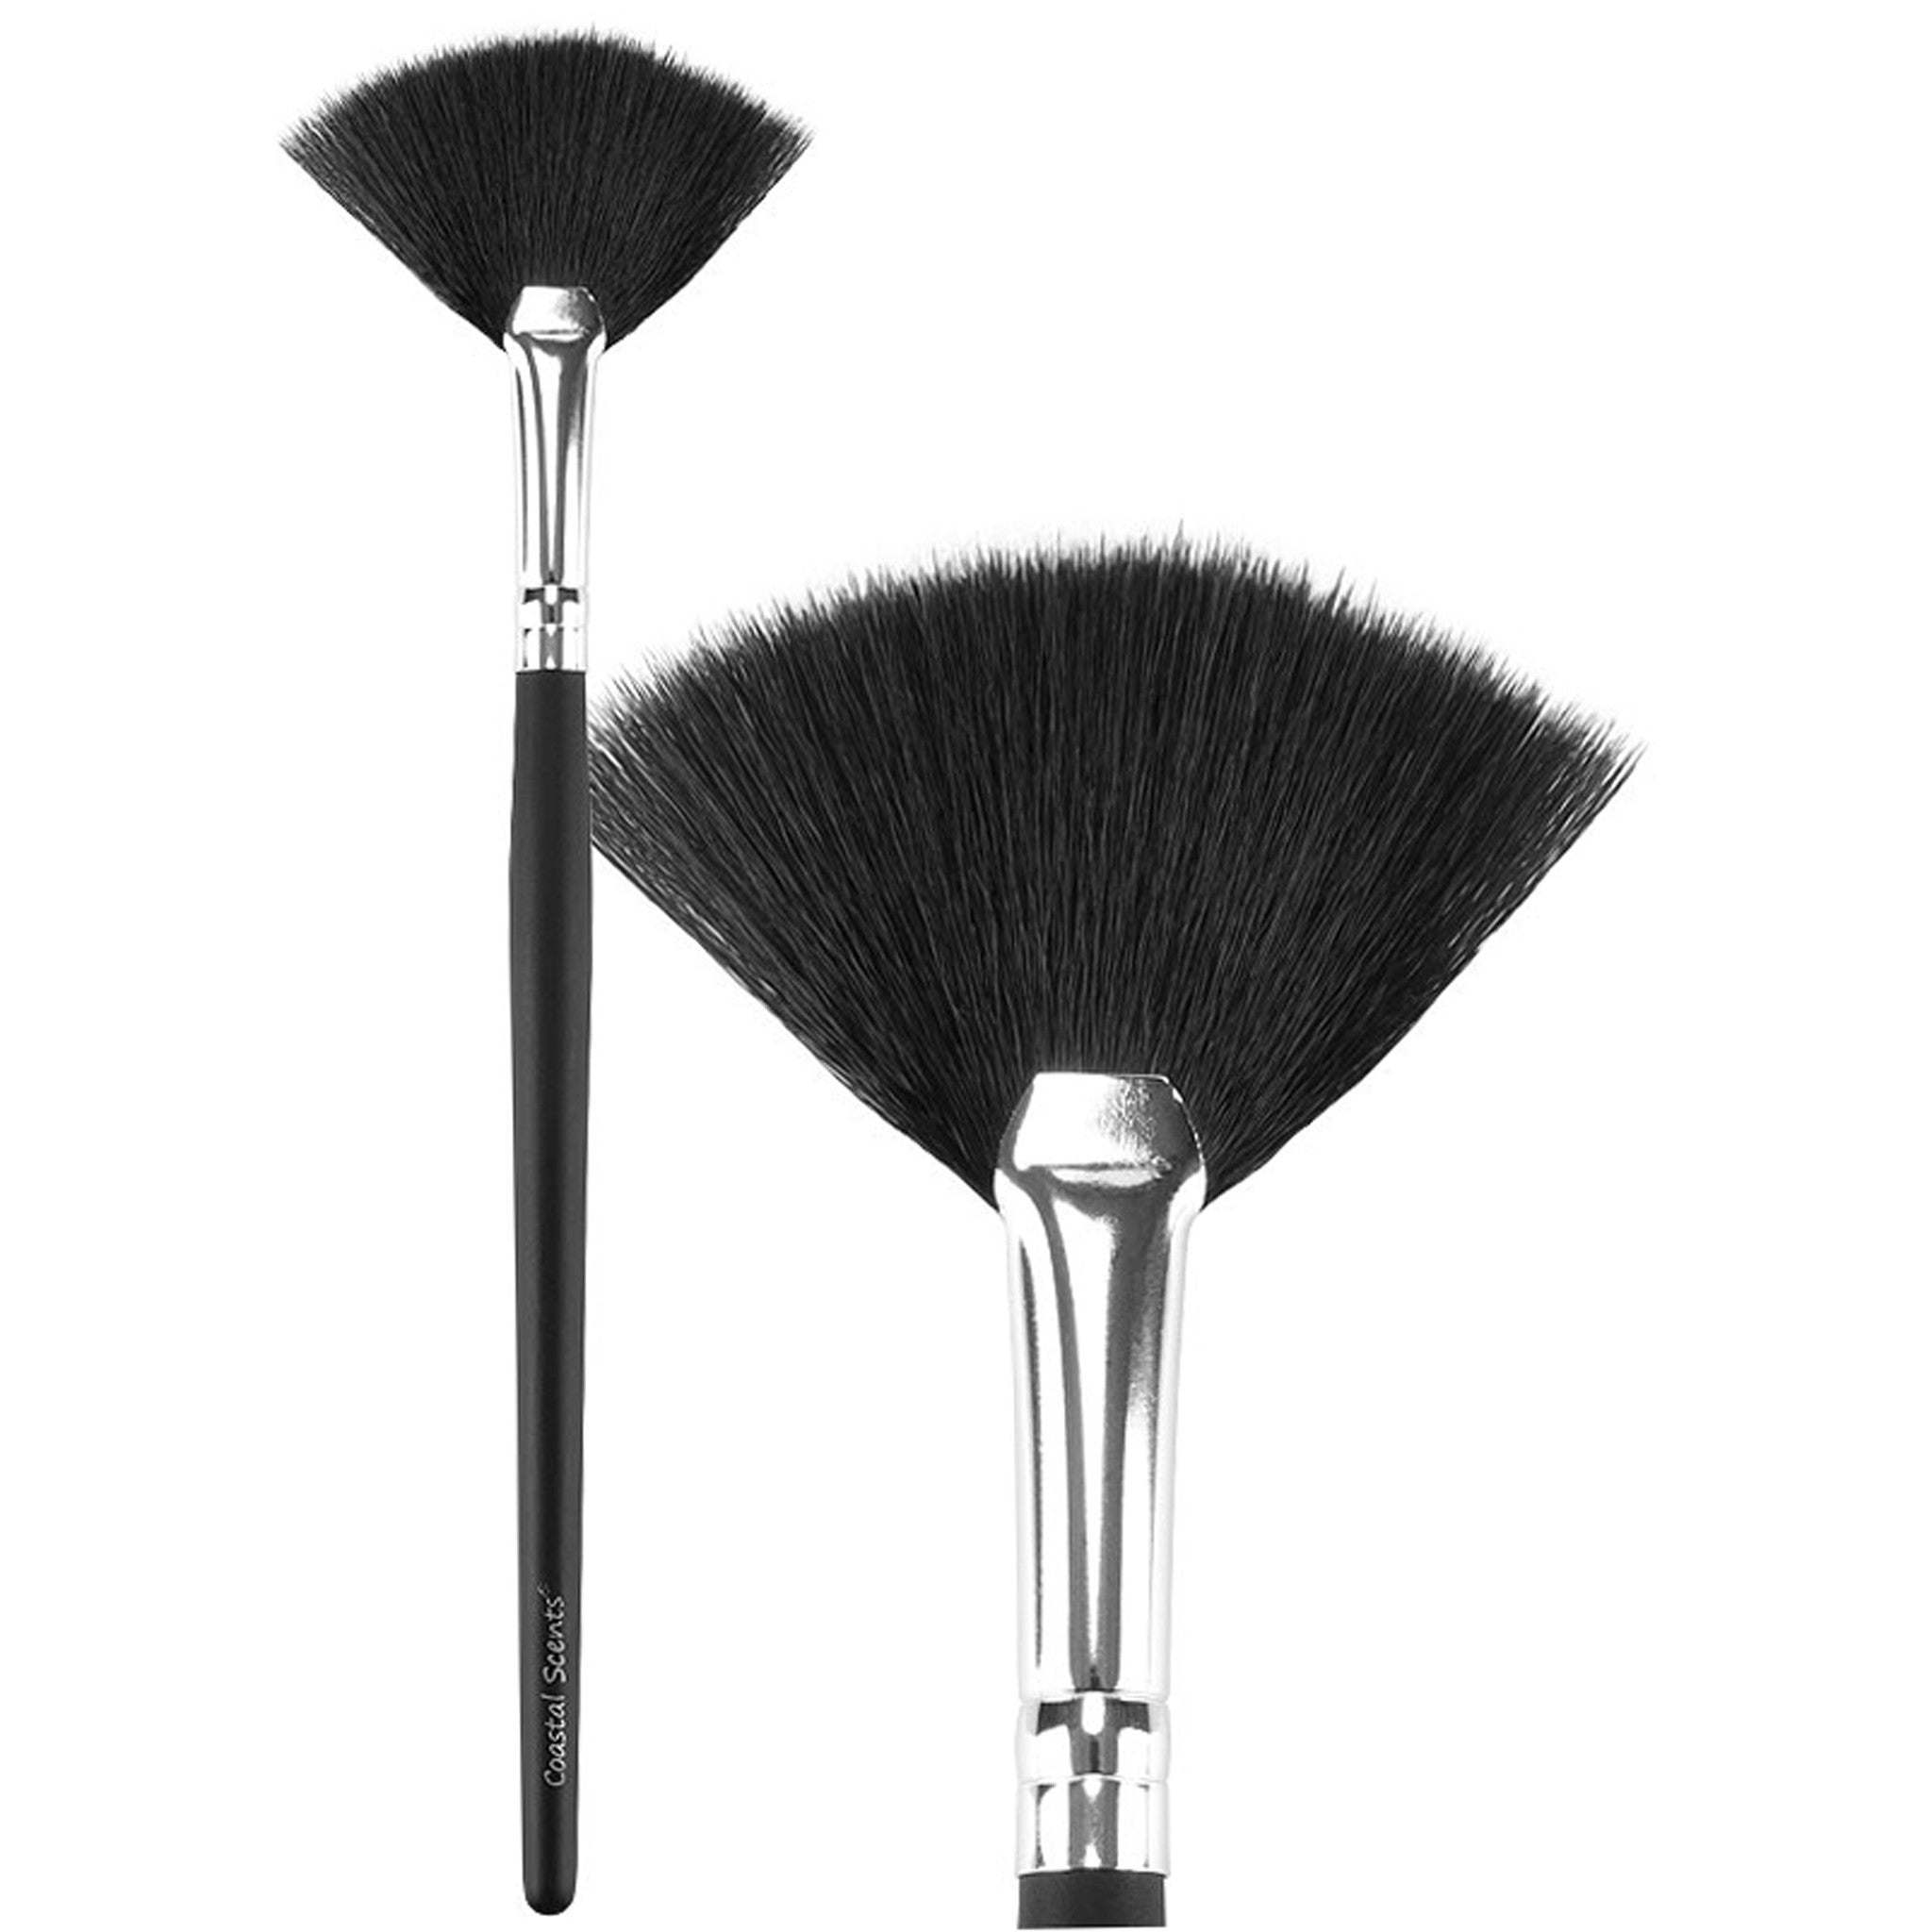 Coastal Scents coupon: Classic Small Fan Brush Synthetic